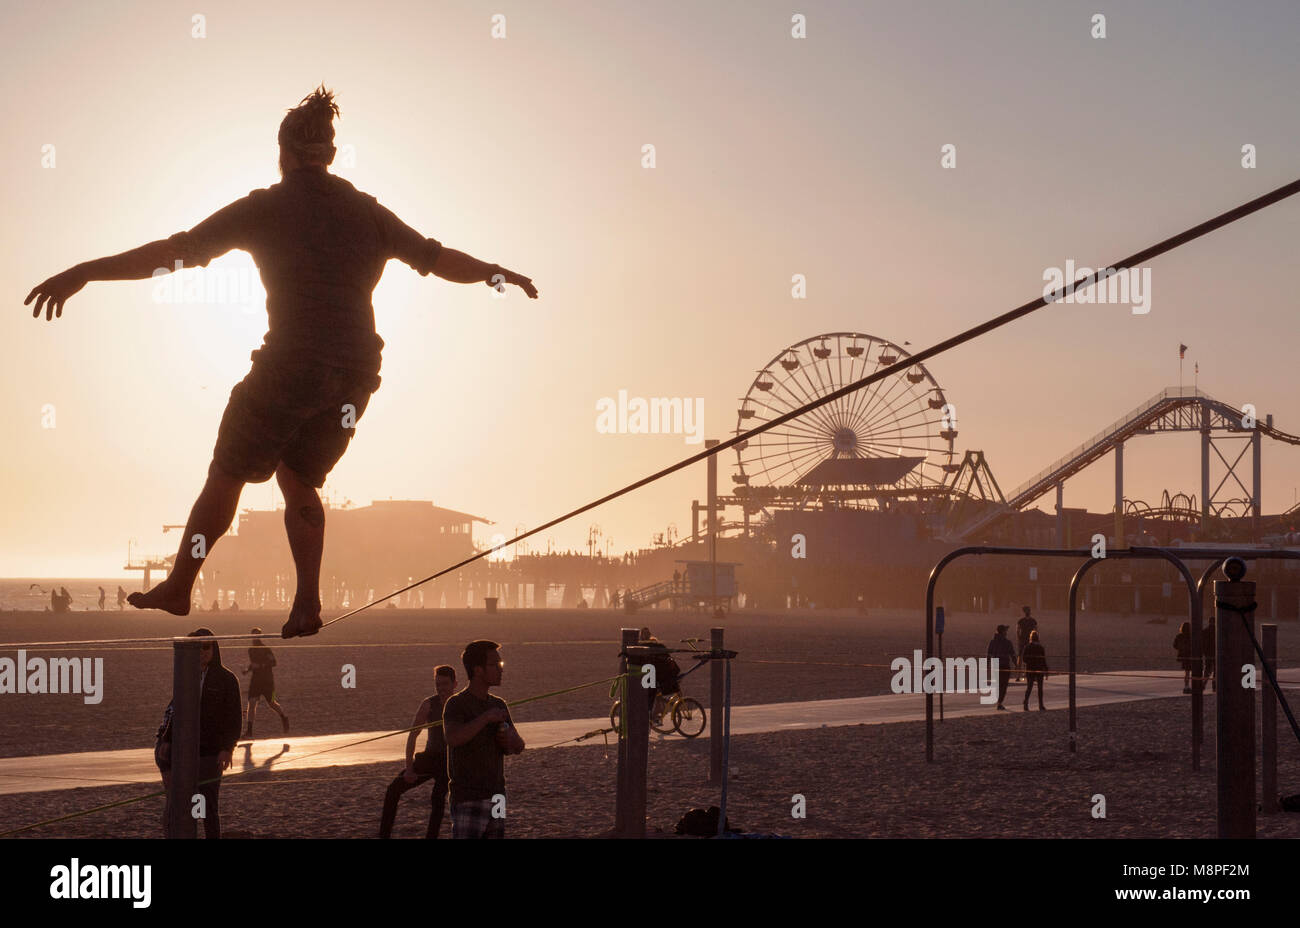 Tight rope practice on beach near the Santa Monica Pier, Los Angeles, CA - Stock Image